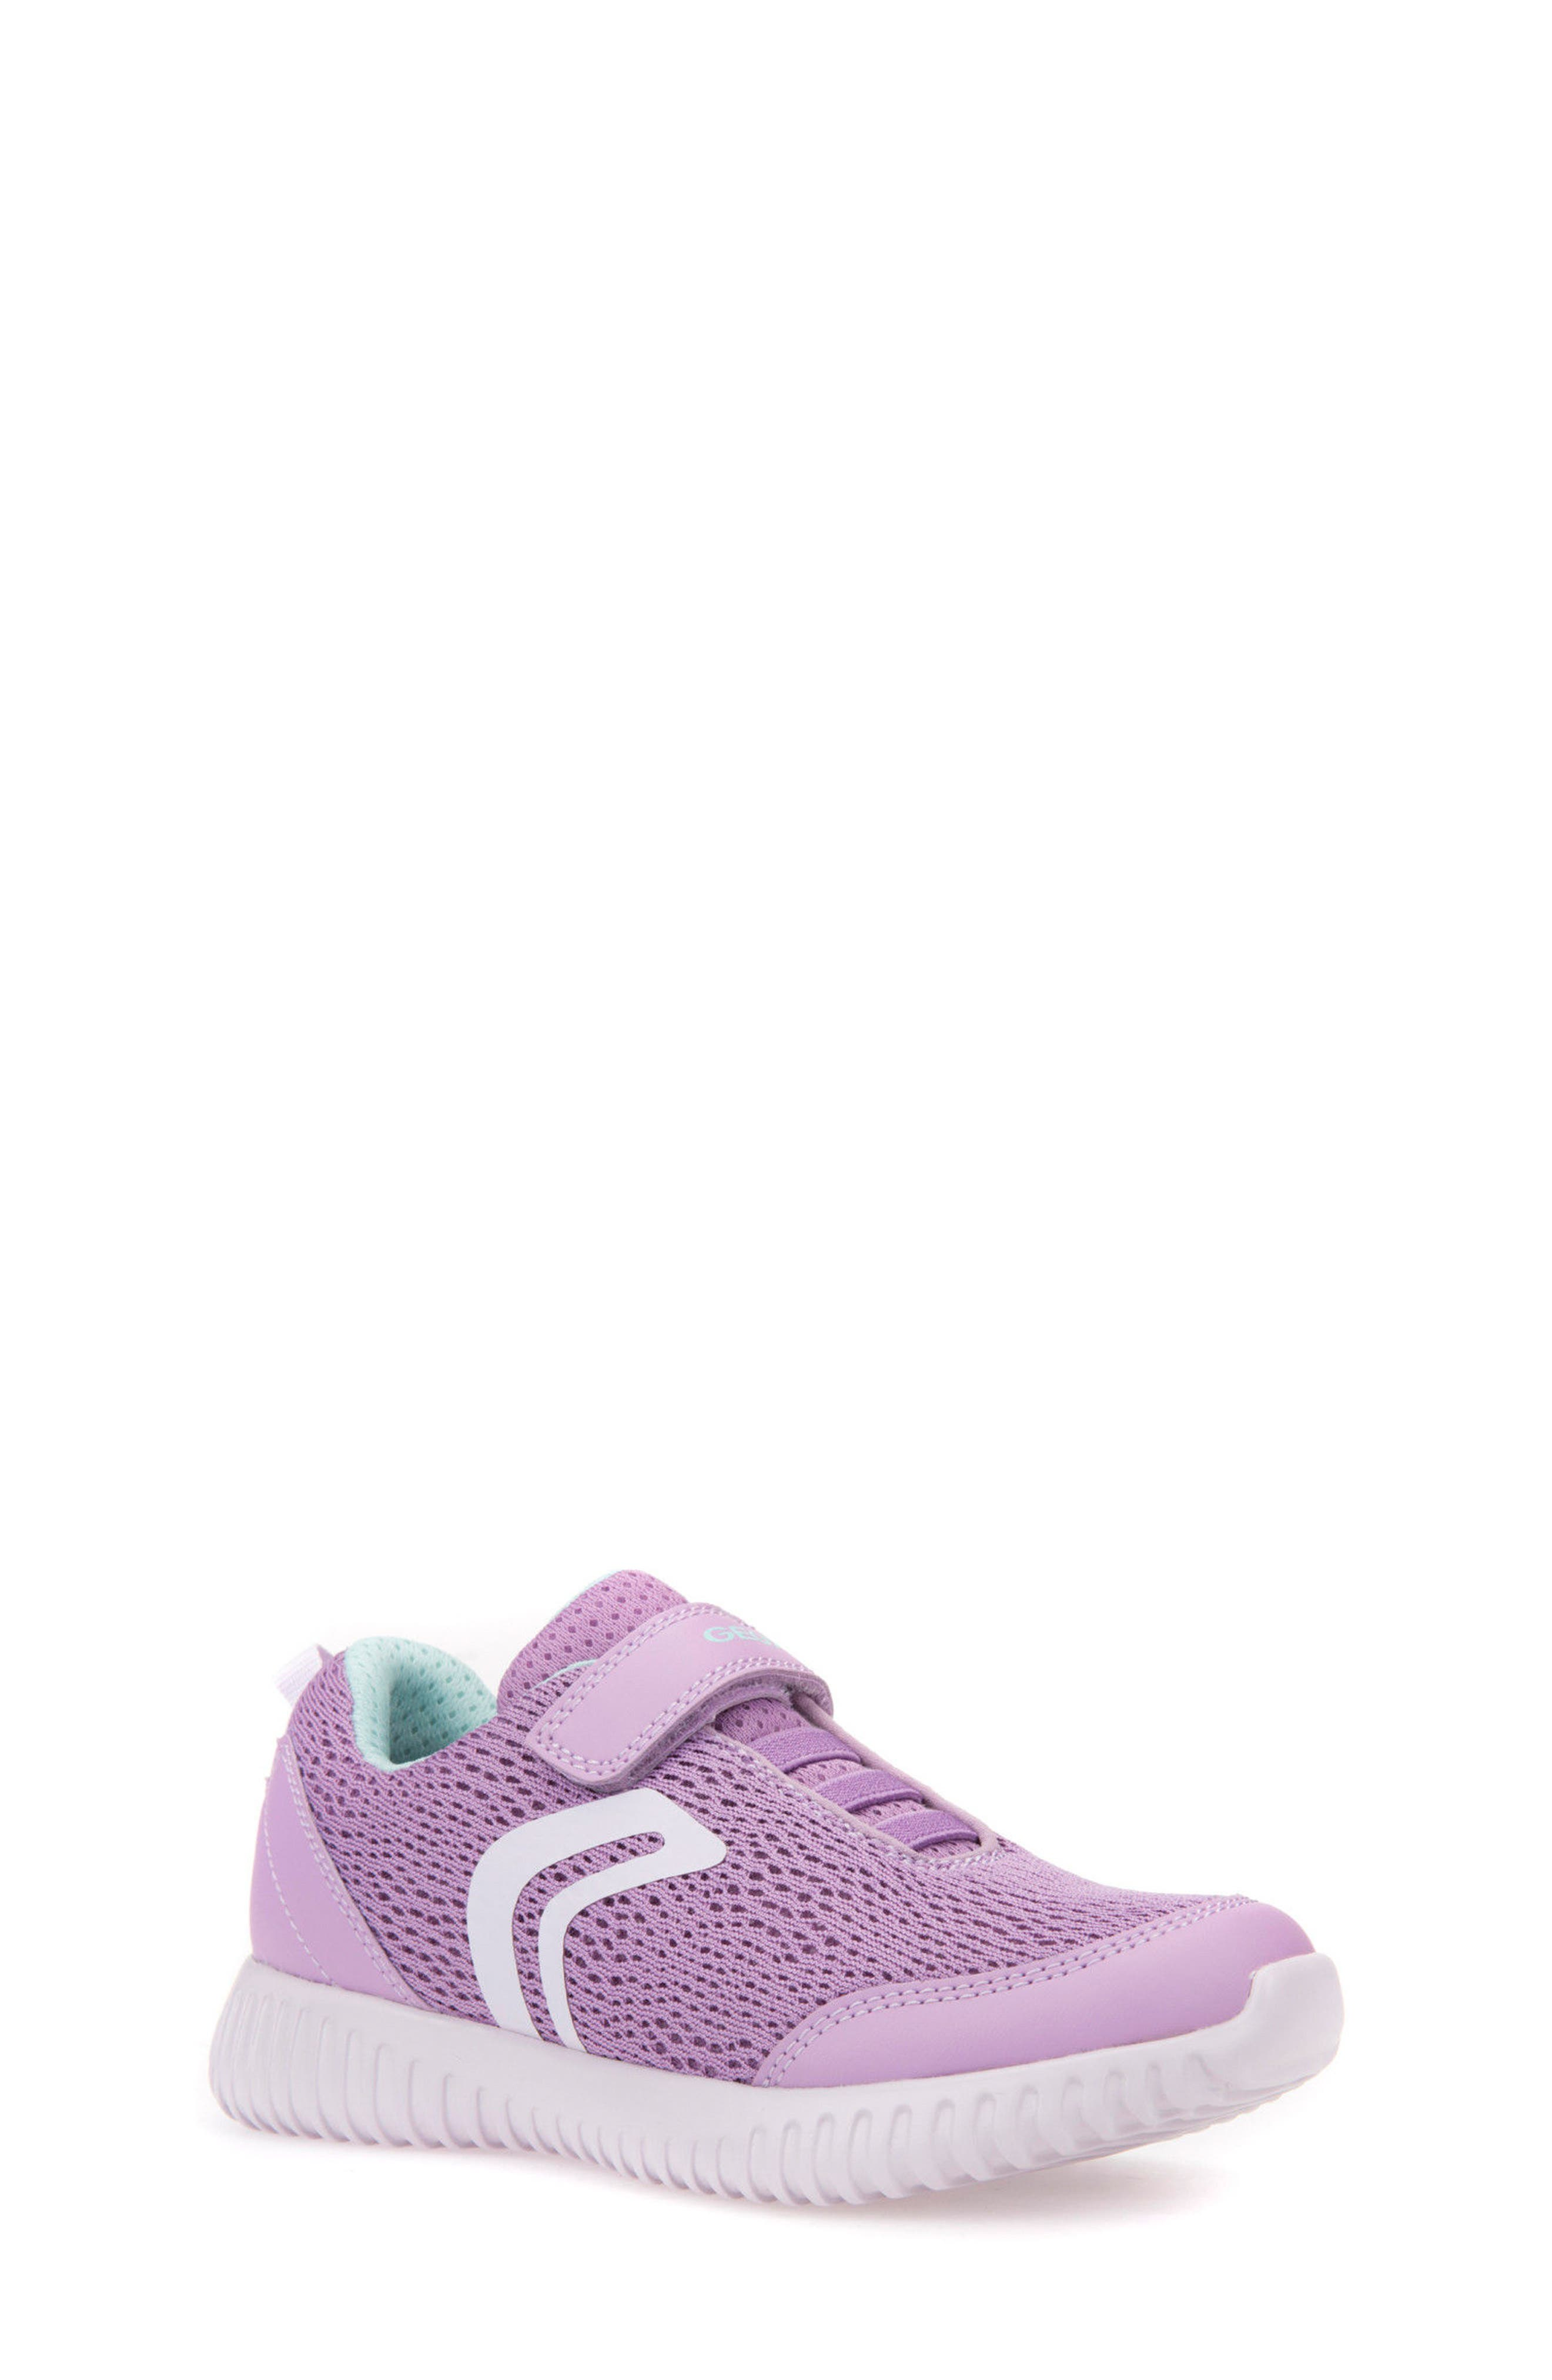 Geox Waviness Sneaker (Toddler, Little Kid & Big Kid)